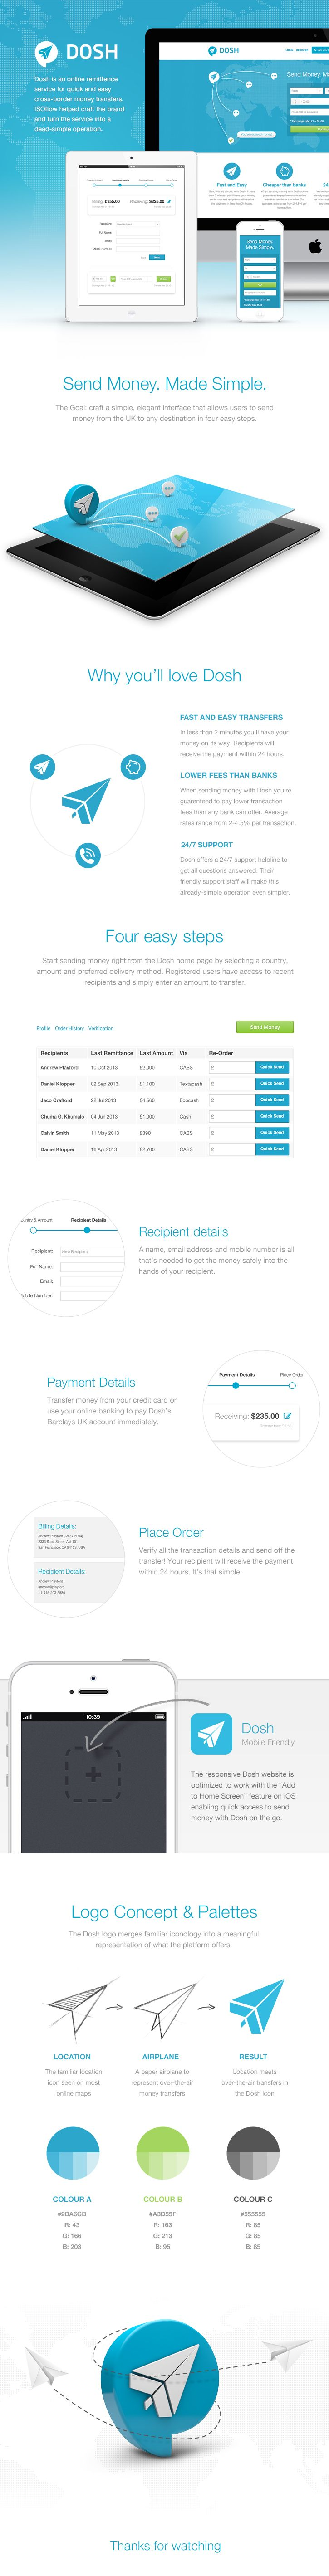 Dosh is an online remittence service for quick and easy cross-border money transfers. ISOflow helped craft the brand and turn the service into a dead-simple operation.  By ISOflow, on Behance.